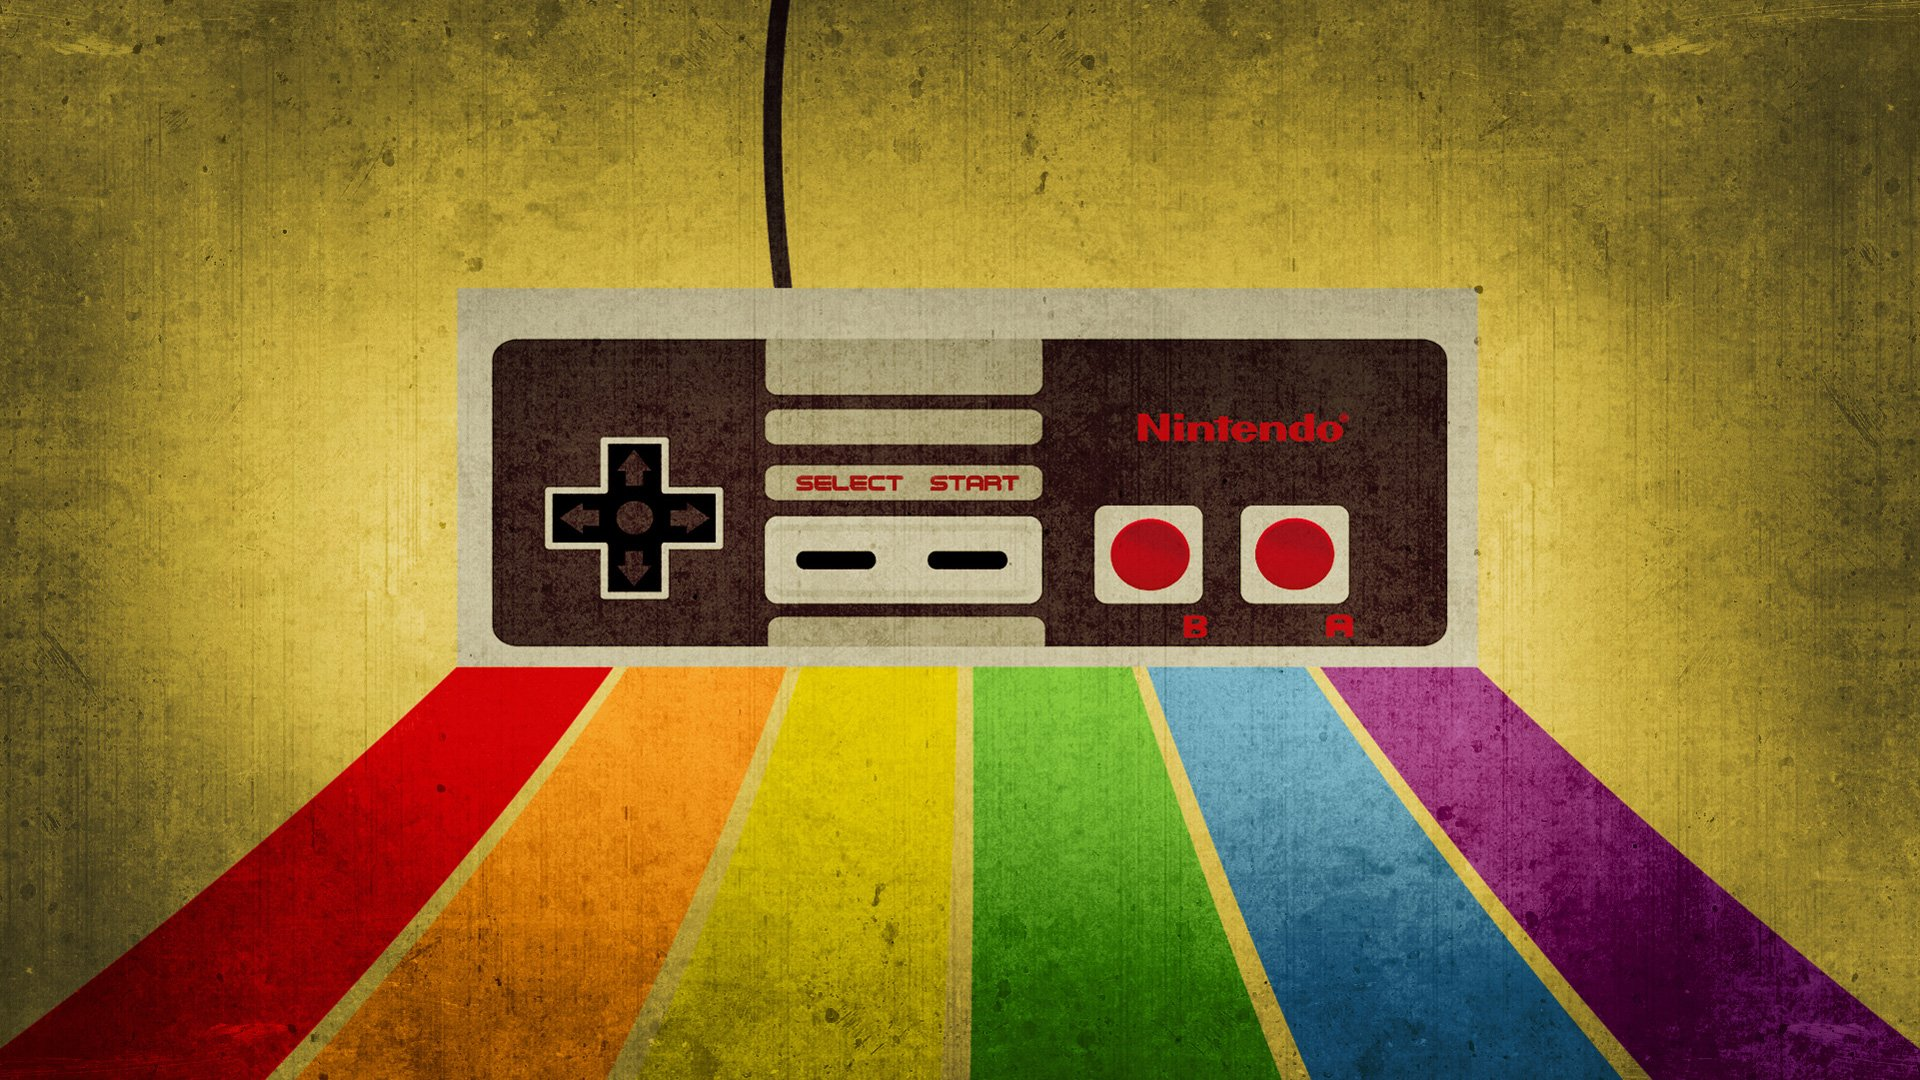 Nintendo Retro Gaming HD Wallpaper 1920x1080